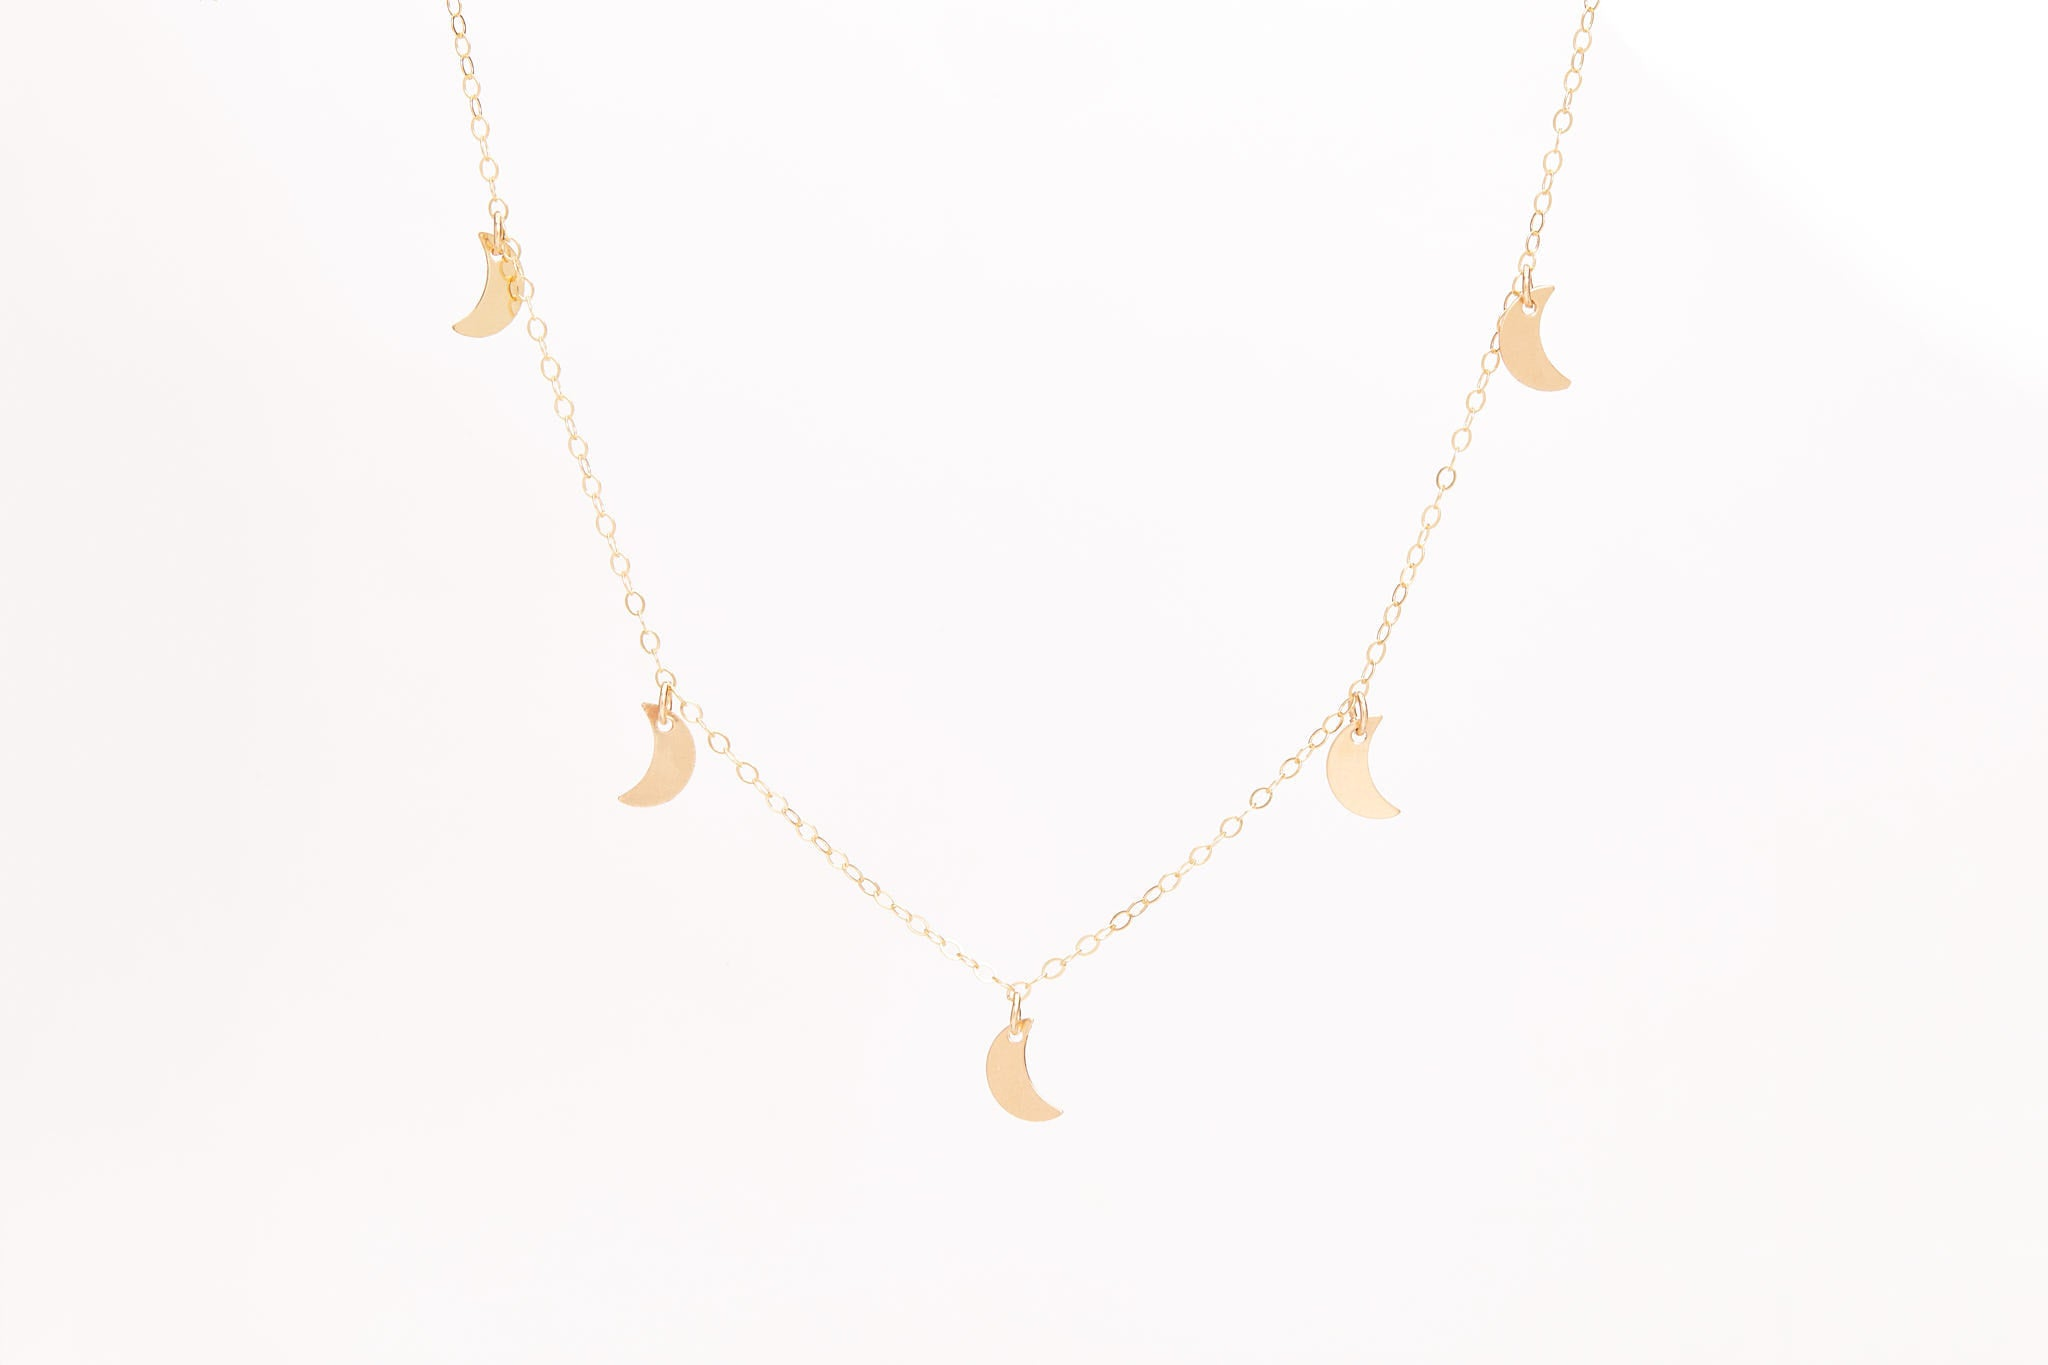 The Moon necklace